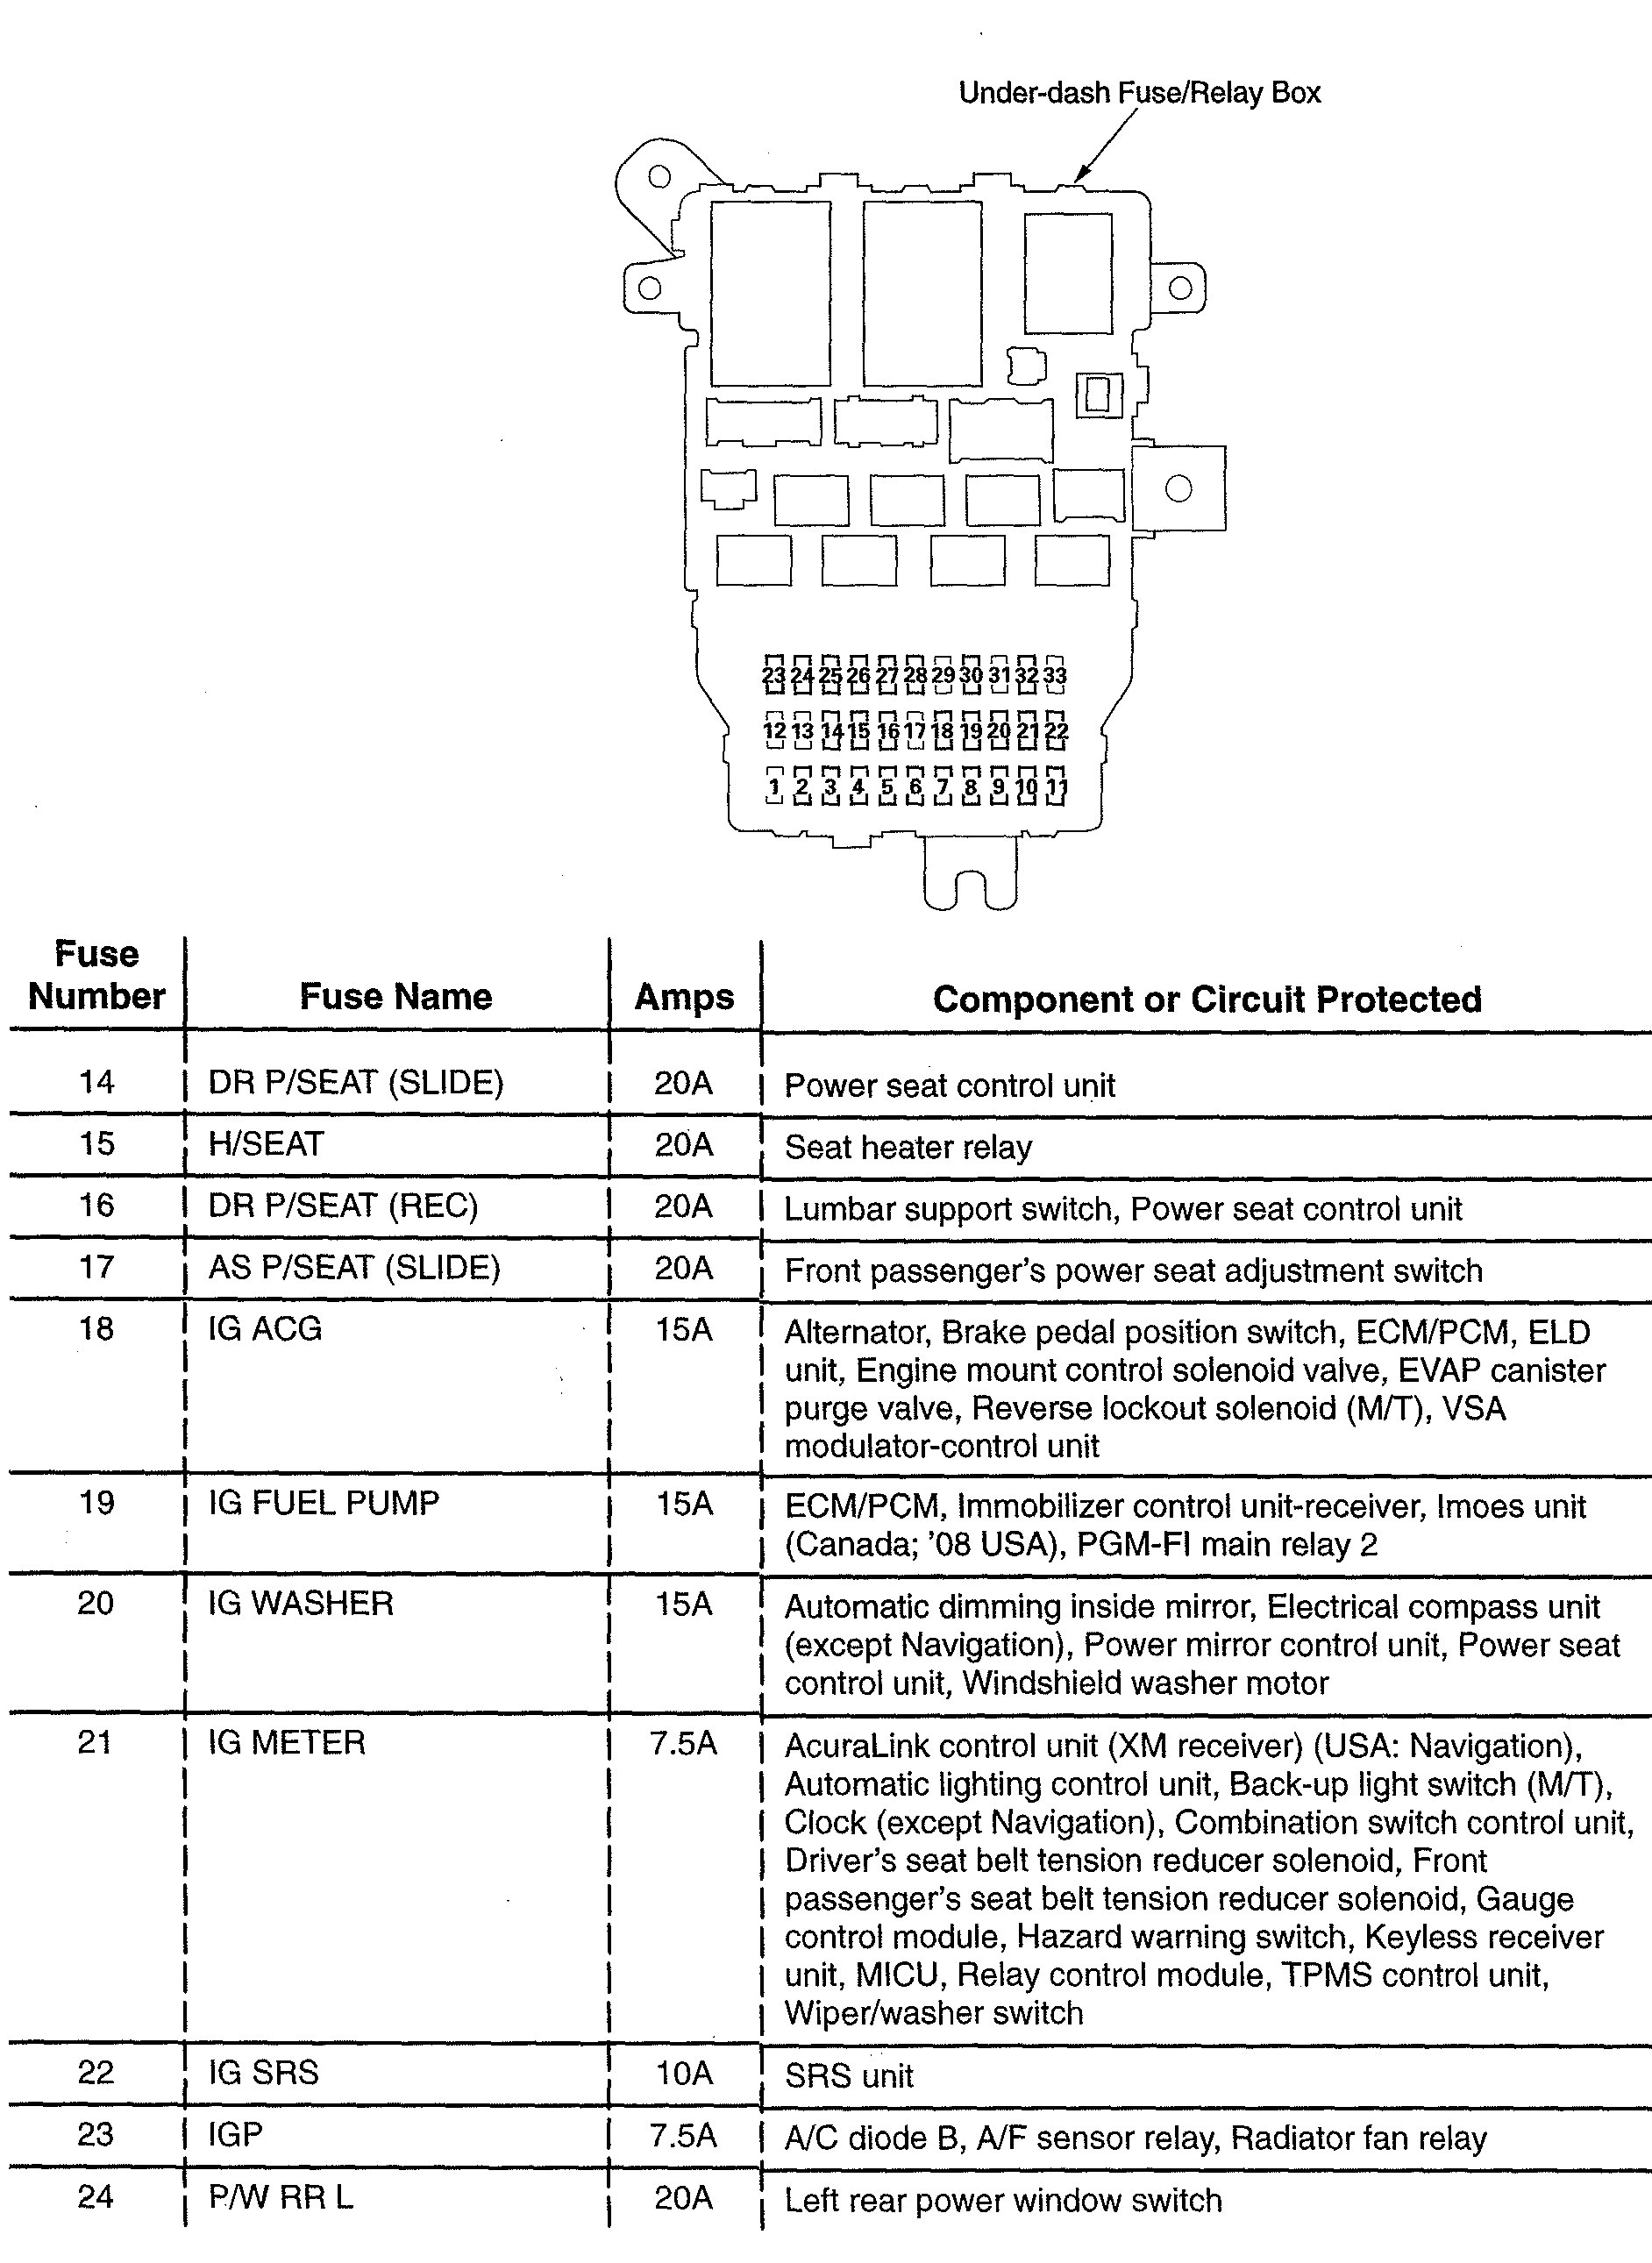 2004 Acura Mdx Diagram - Vtl.dontmilkit.uk • on acura rsx wiring-diagram, acura mdx battery, acura mdx headlights, acura mdx transmission slipping, acura cl wiring diagram, acura mdx ac diagram, acura mdx belt diagram, acura mdx spark plugs, acura mdx engine problems, acura mdx brakes, acura mdx alternator diagram, acura mdx transmission problems, acura mdx relay, acura rl wiring diagram, acura mdx fuel pump, acura mdx oil pump, acura tl wiring diagram, acura engine diagrams, acura mdx parts diagram, acura mdx fuse box,